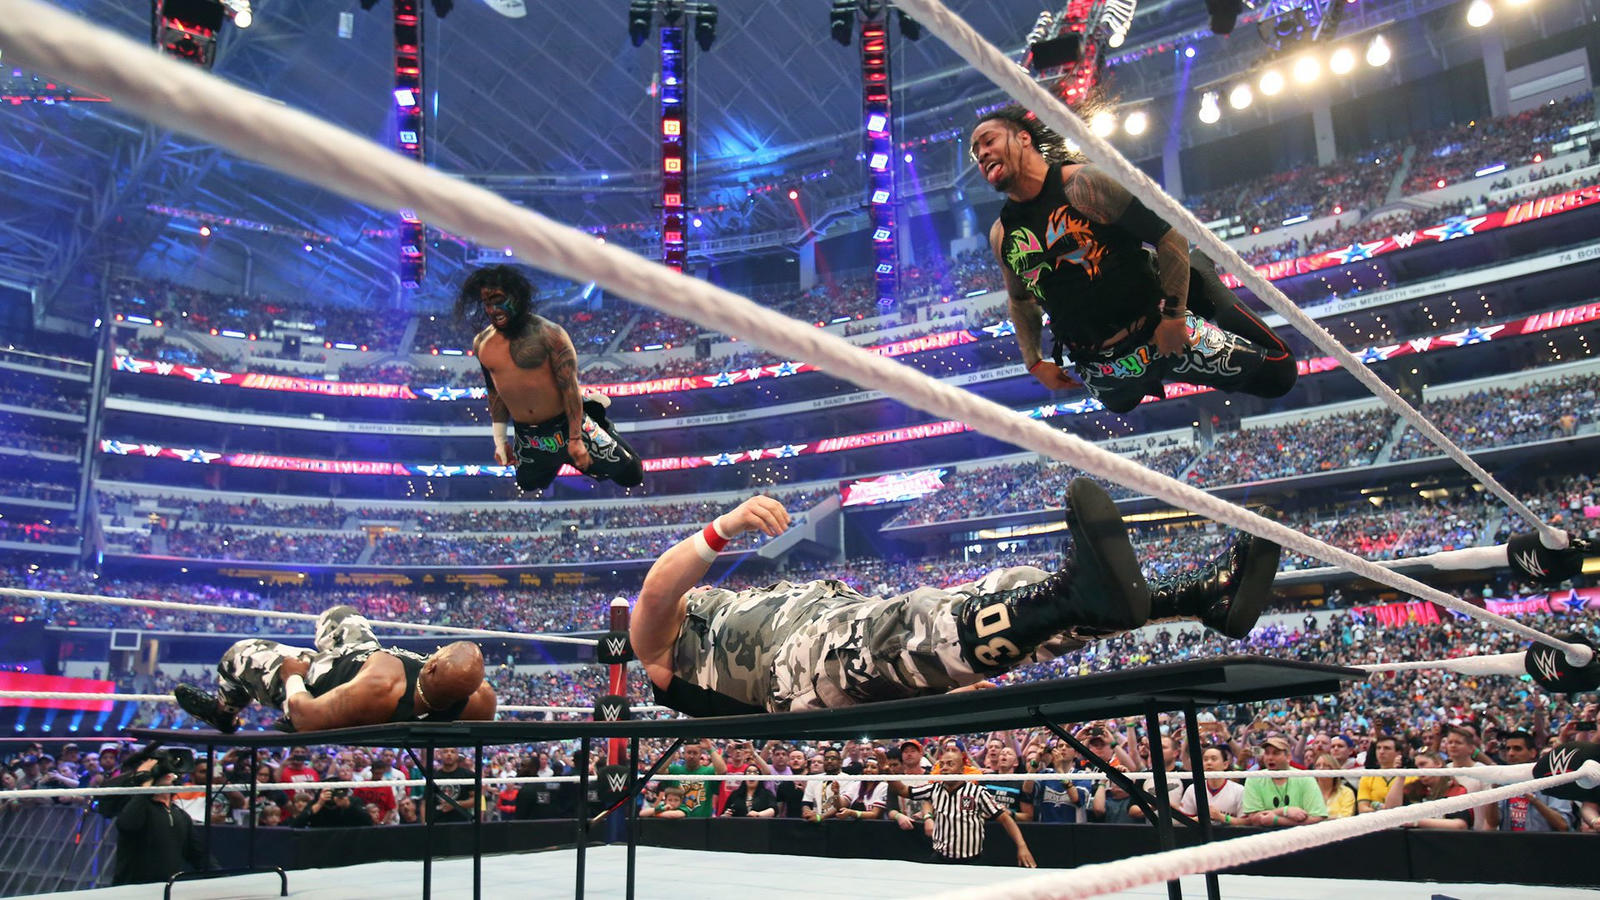 Wwe - WrestleMania 2016 - Results